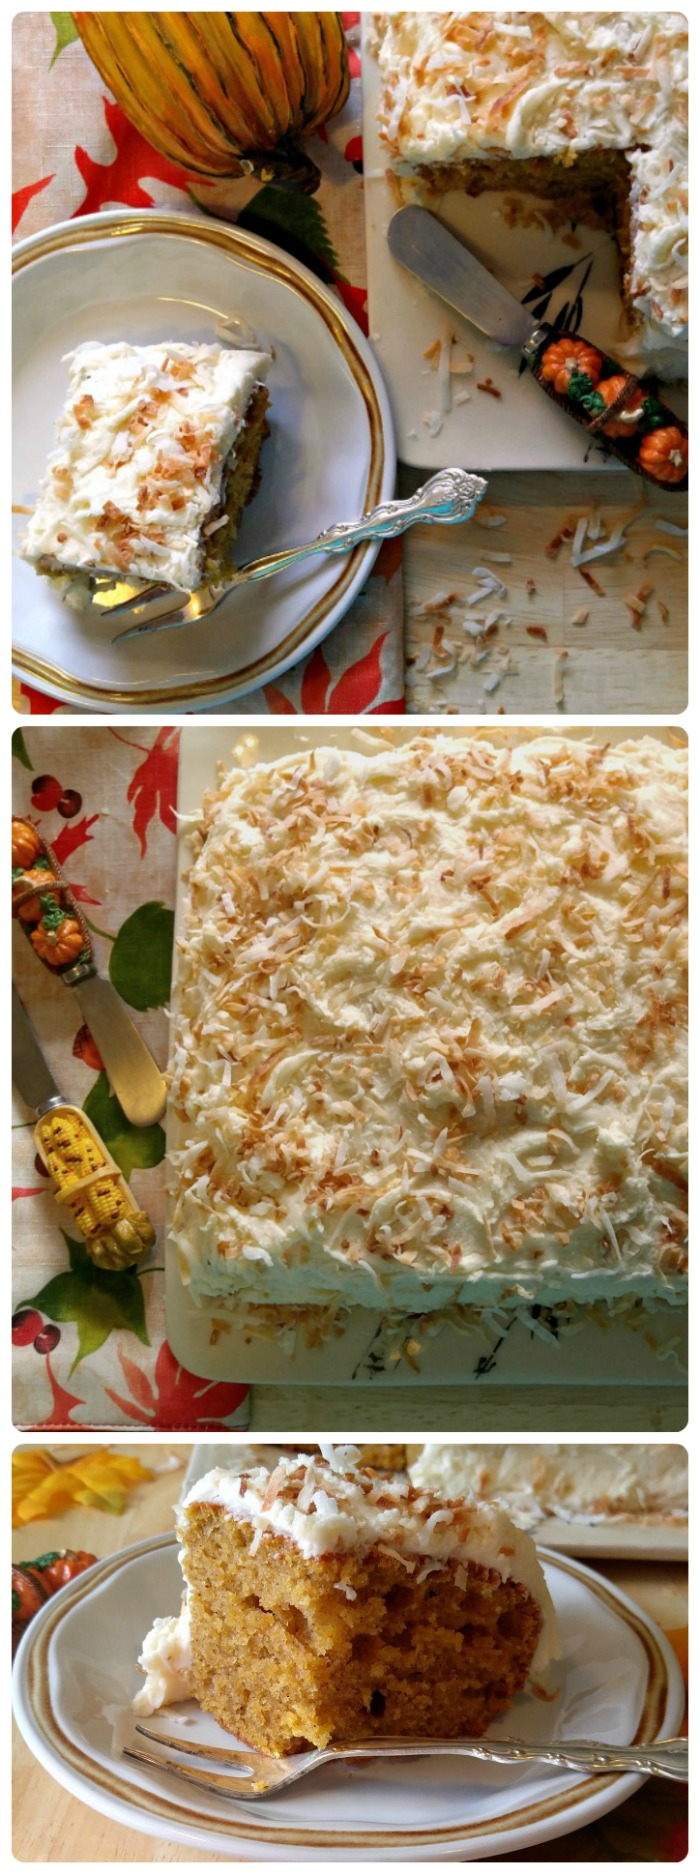 This pumpkin cake will be the hit of your Thanksgiving celebration. It is moist and light and full of the flavor of autumn. The crunchy toasted coconut frosting adds a delicious touch. #BobsHolidayCheer #ad